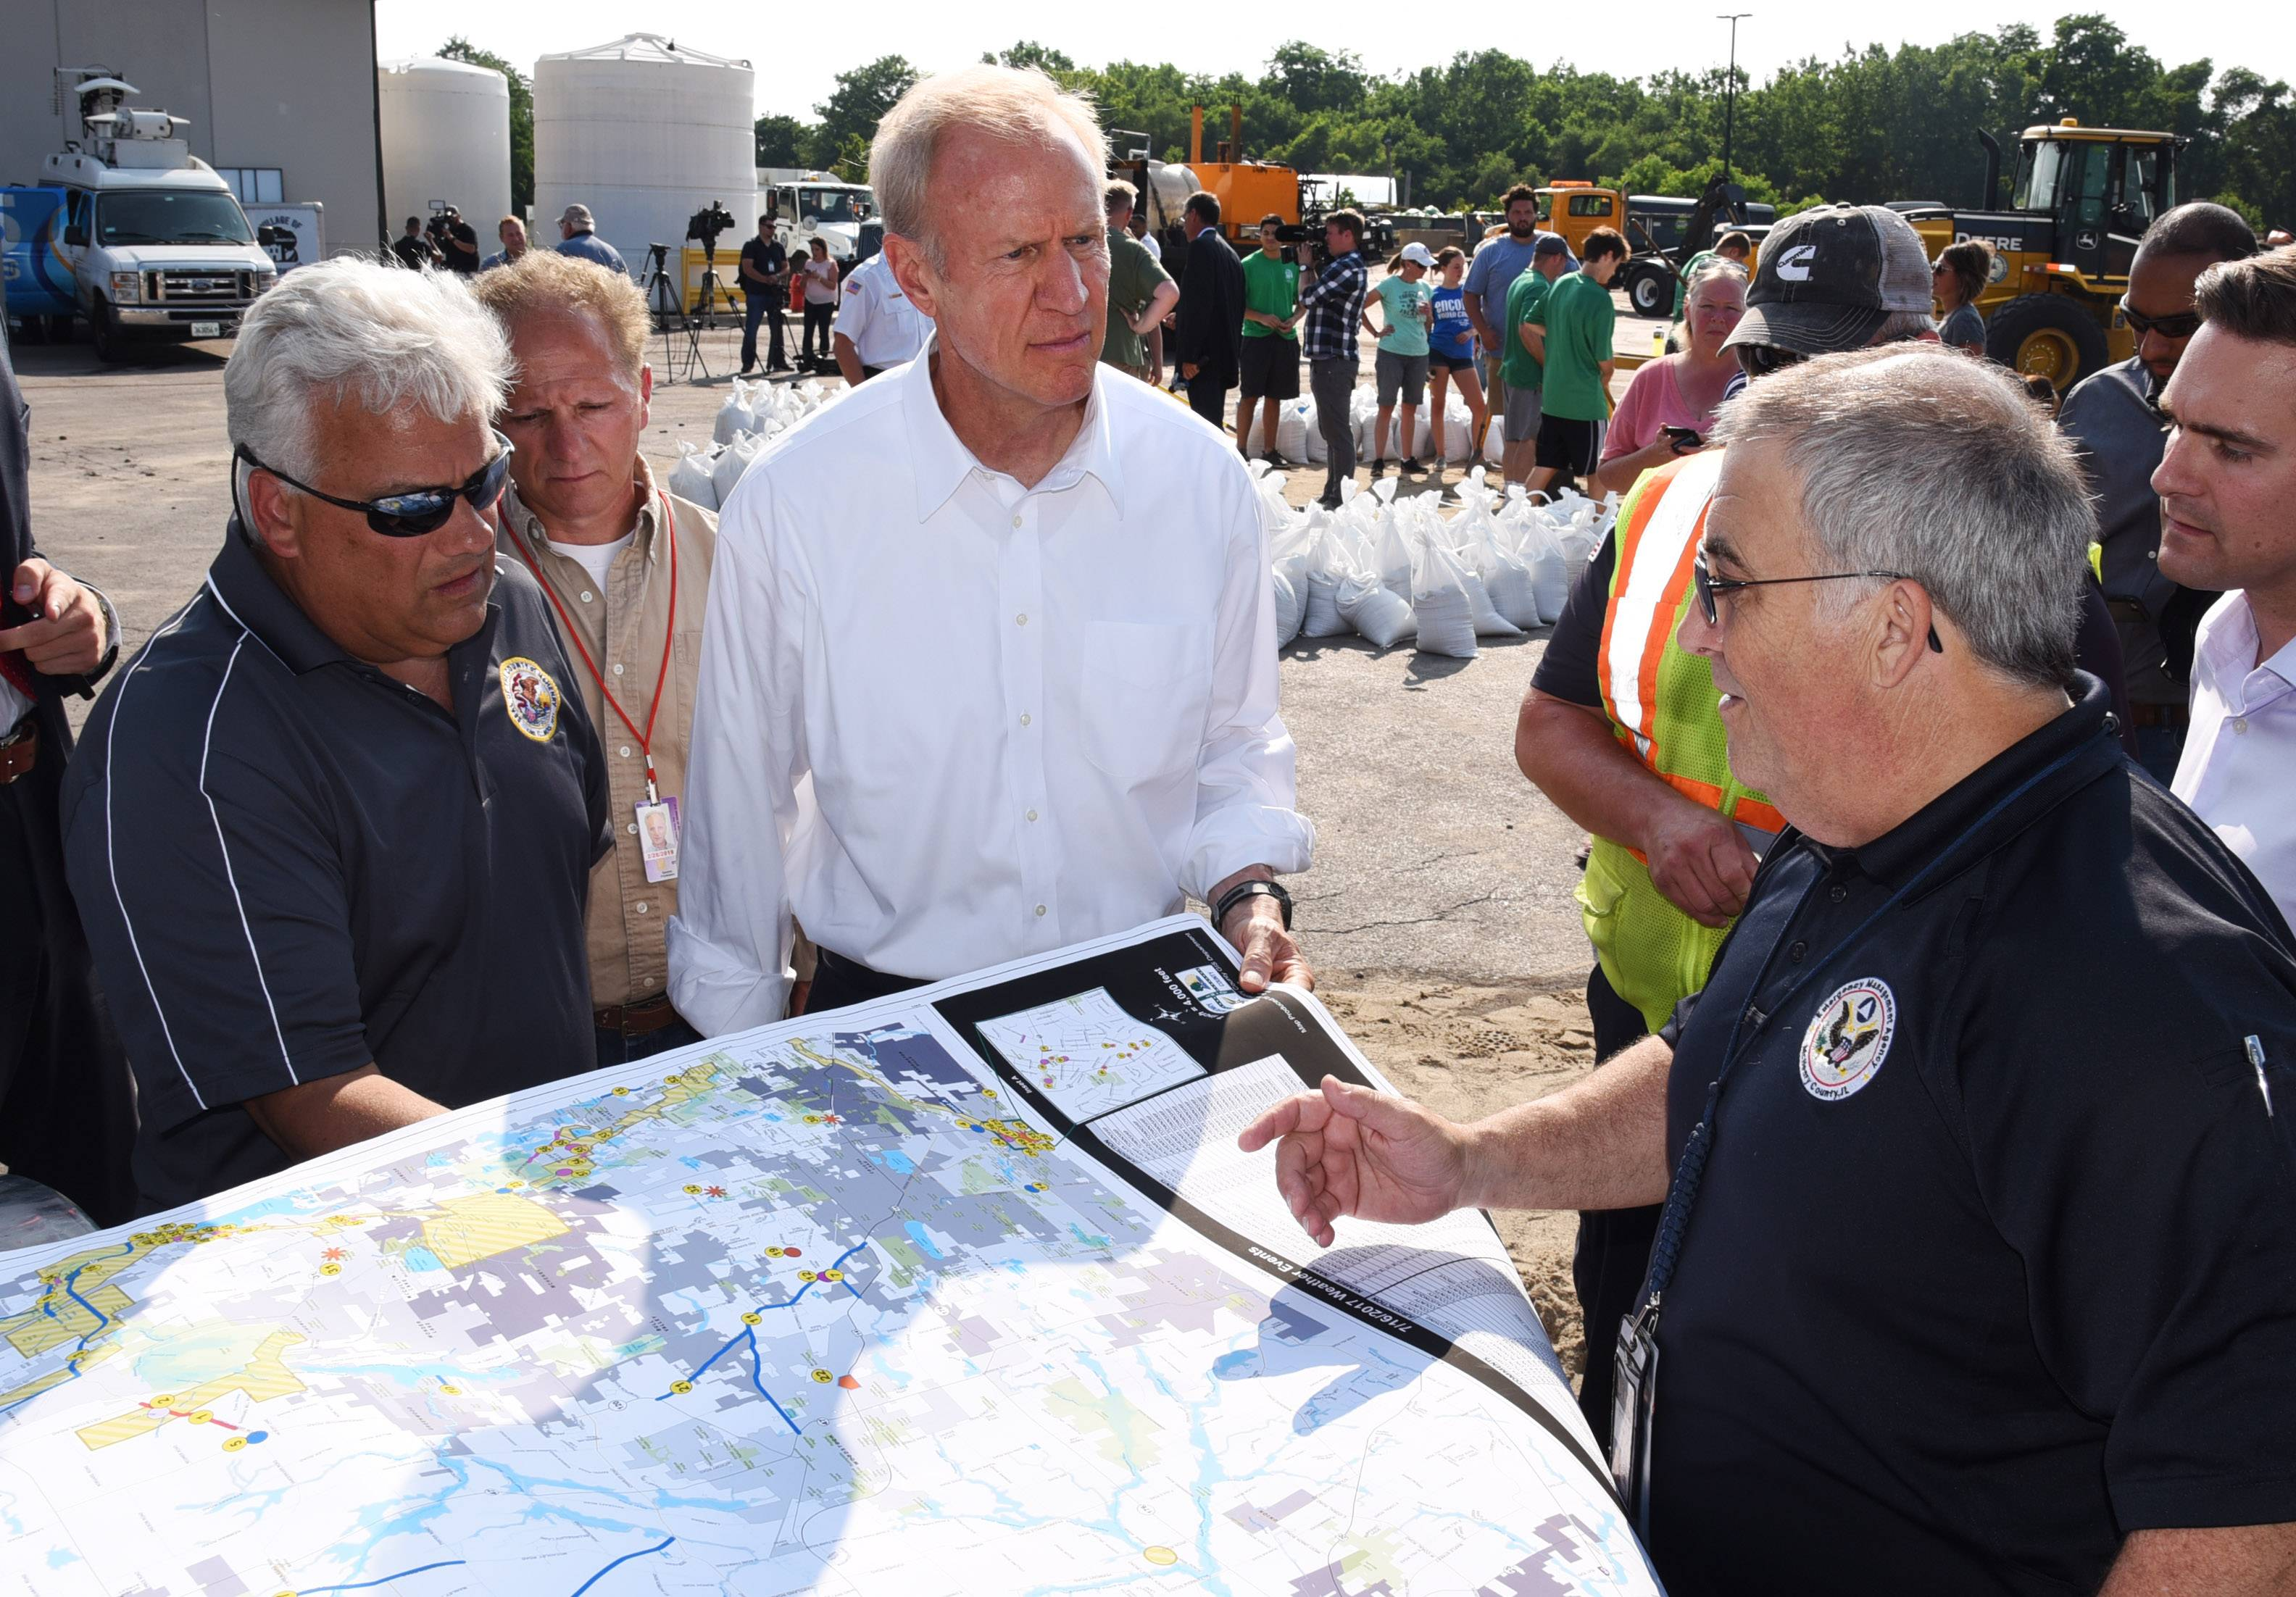 Gov. Bruce Rauner, center, looks at a flood inundation and road closure map with McHenry County Emergency Management Director David Christensen, right, and McHenry County Board Chairman Jack Franks, left, on Sunday at Algonquin's public works facility.